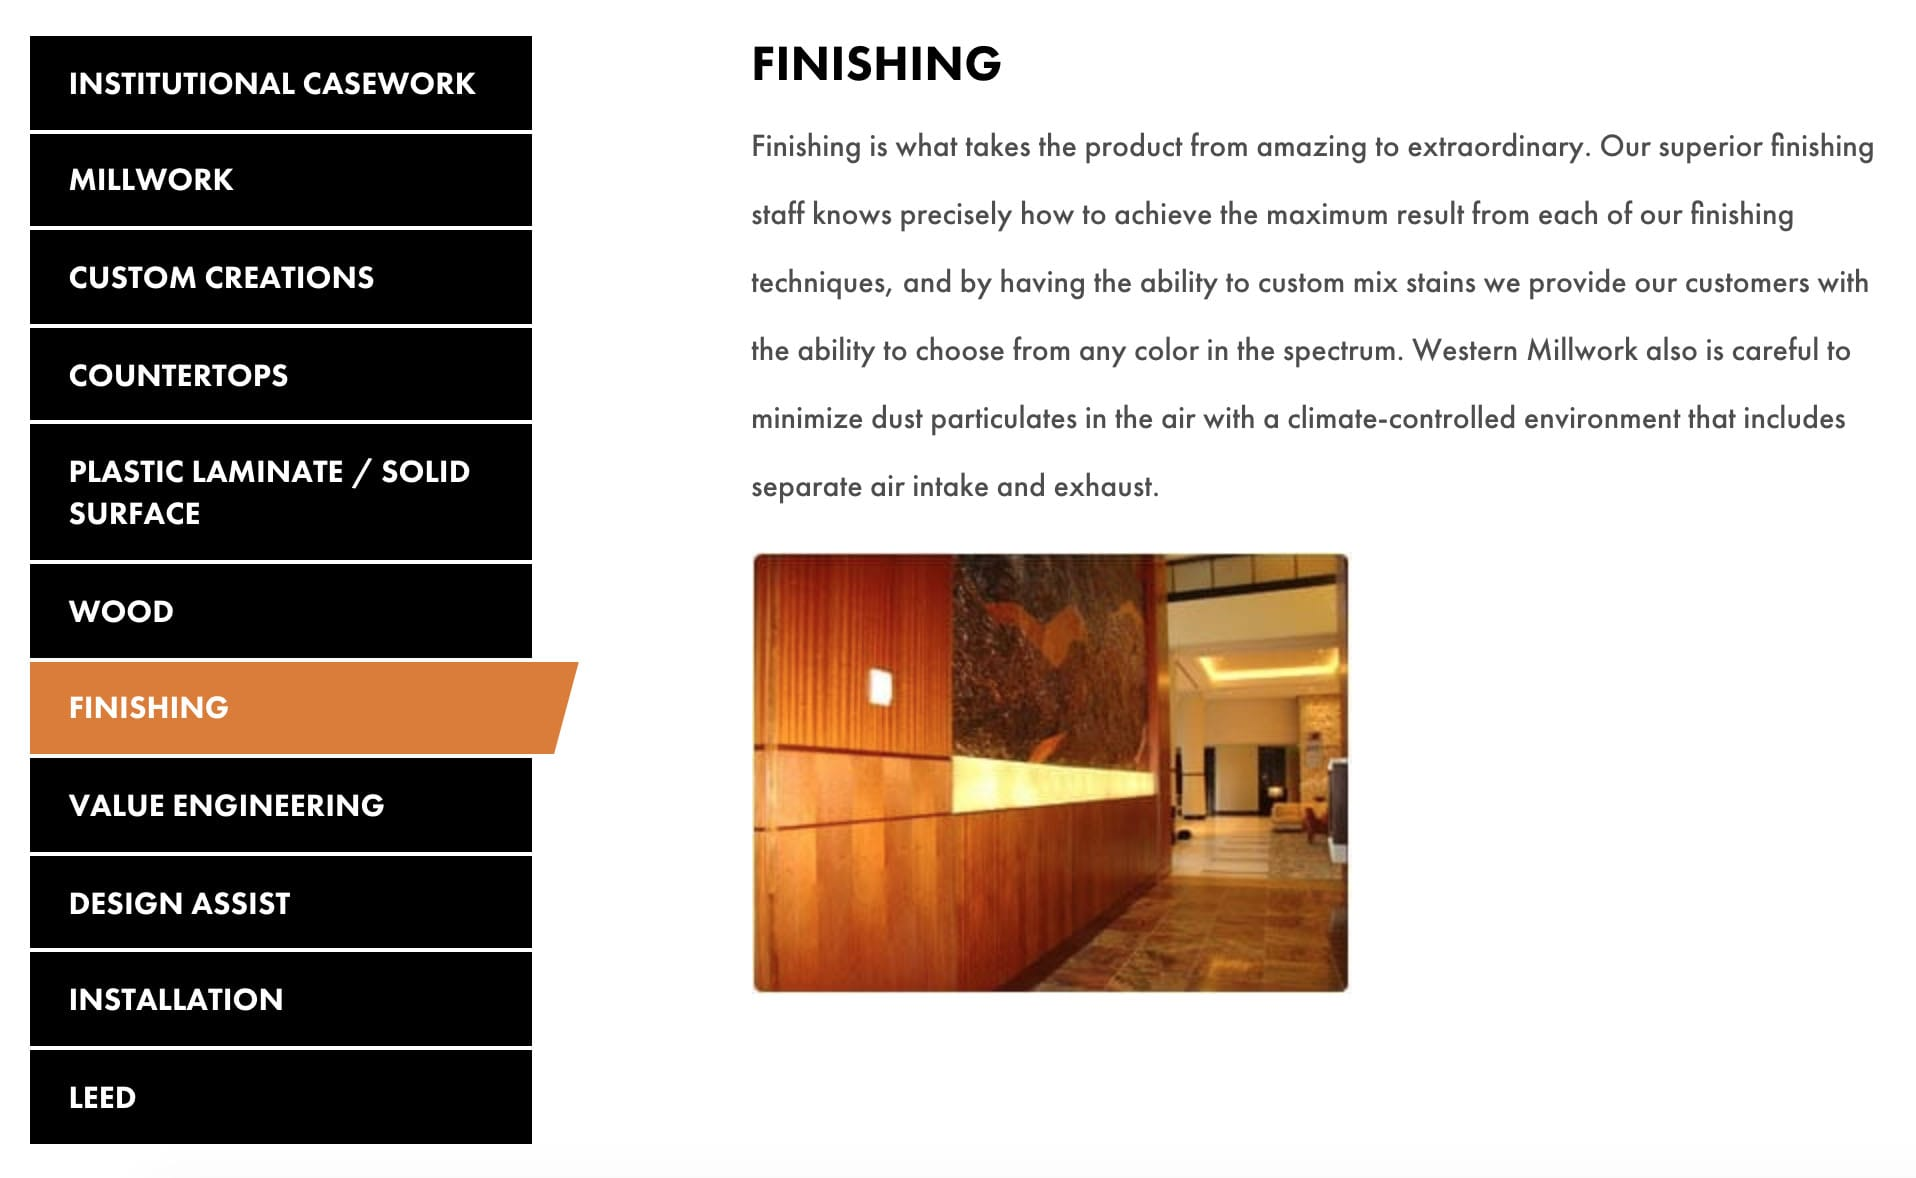 Western Millwork Custom Website - Motion Tactic